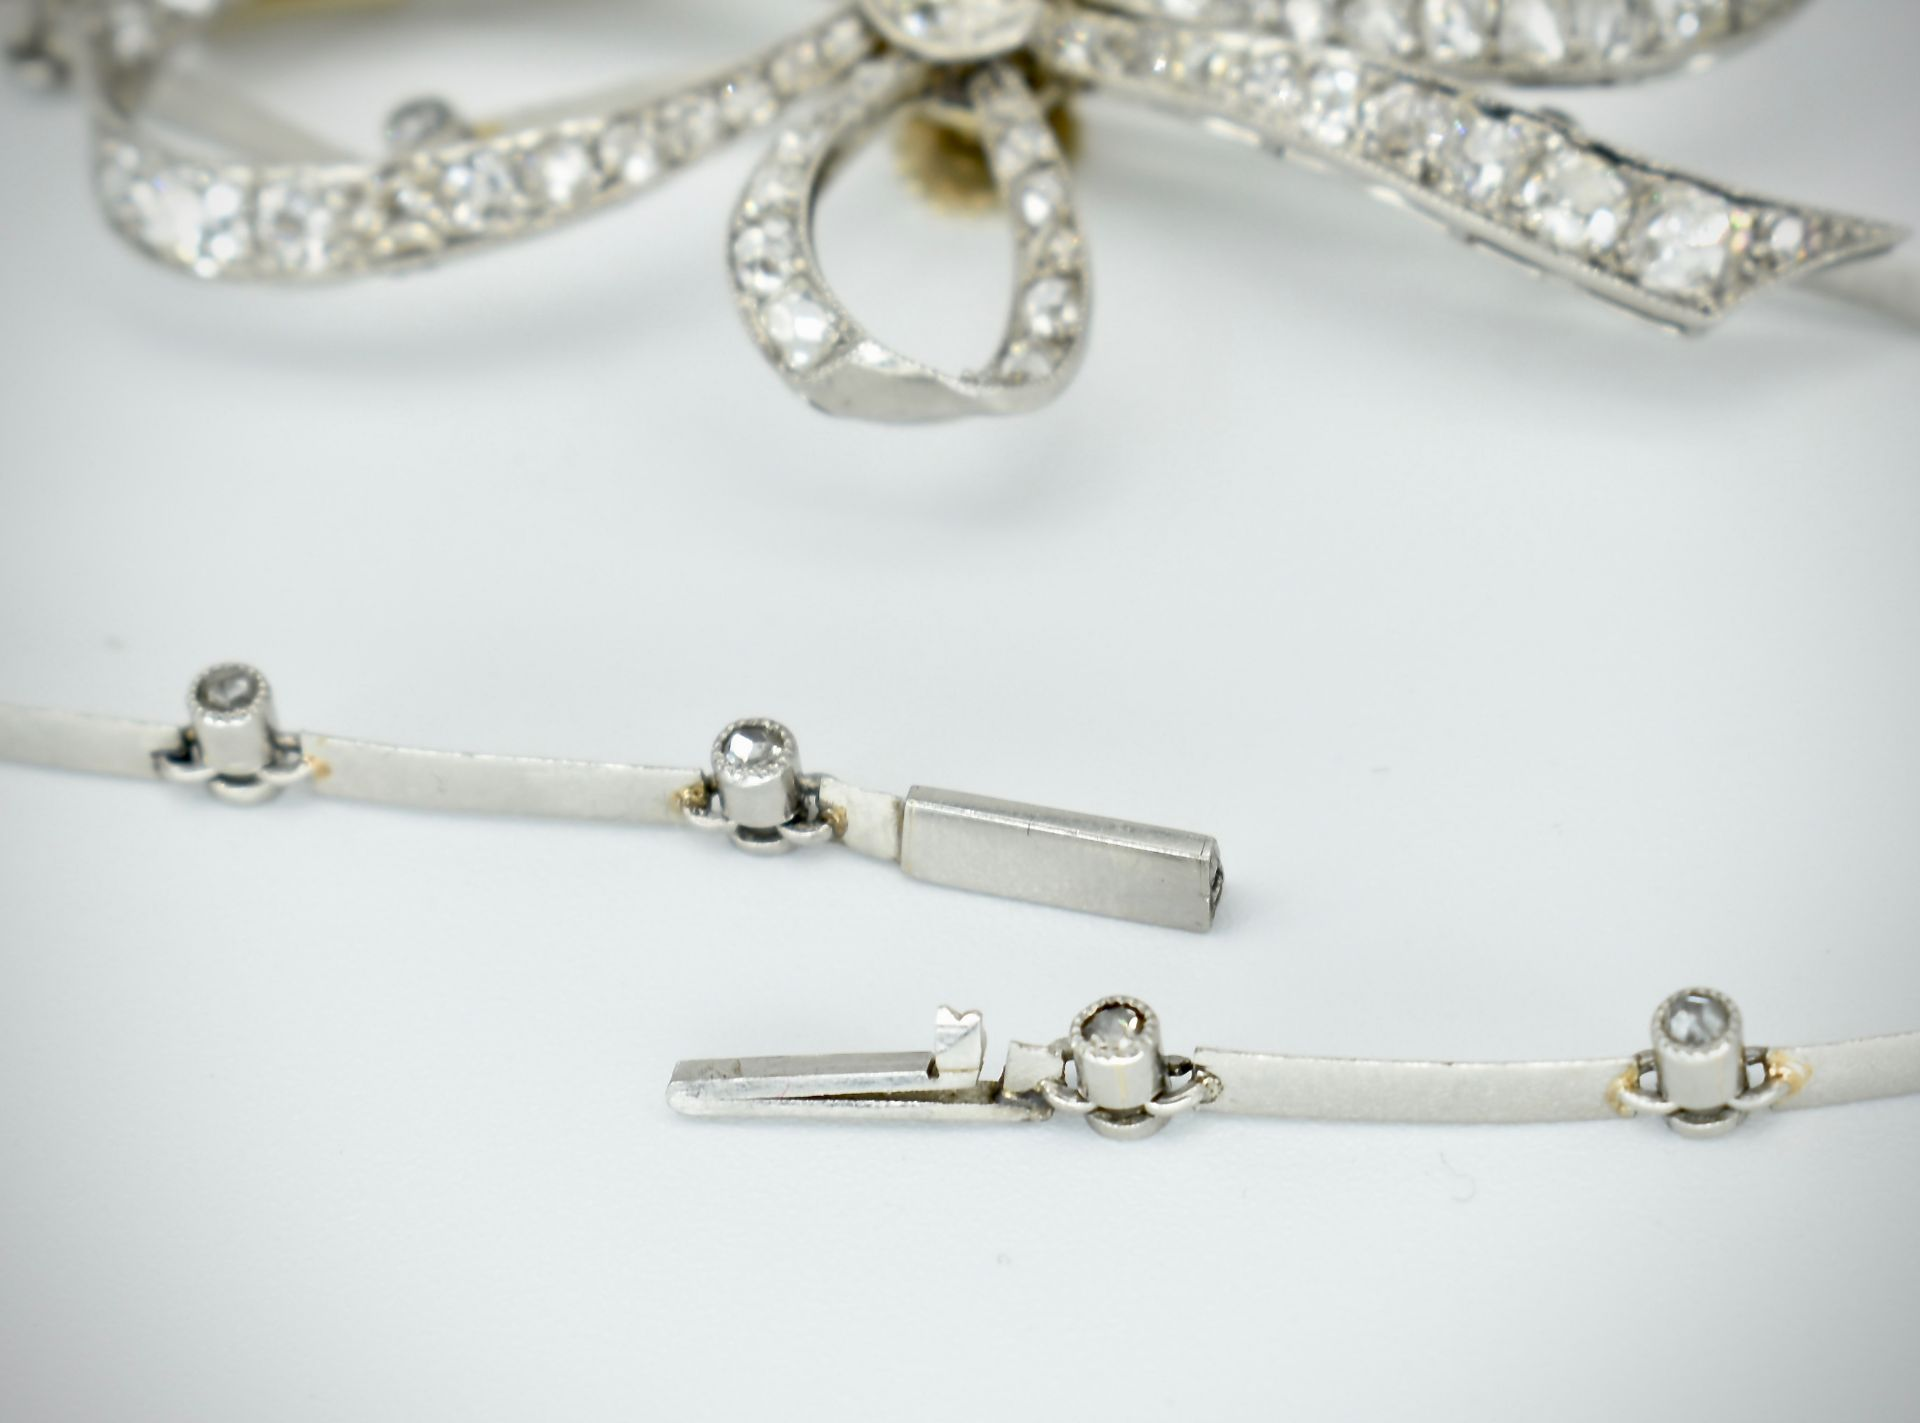 French 18ct Gold Platinum & Diamond Collar Necklace - Image 7 of 9